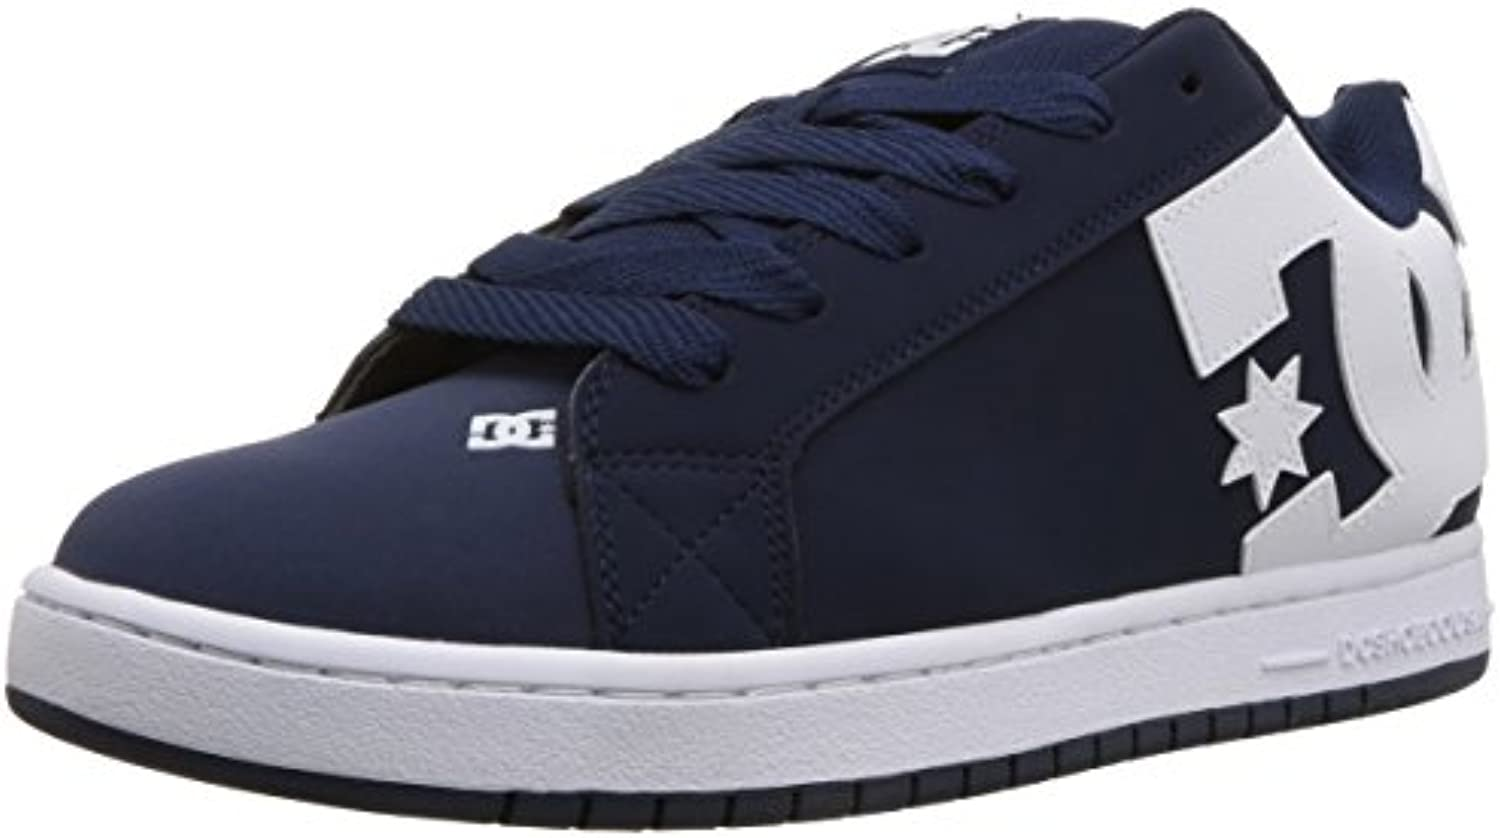 DC scarpe Men's Court Graffic Low Top Navy scarpe da ginnastica scarpe Navy Top blu Wht (NVW) 12 b242e6